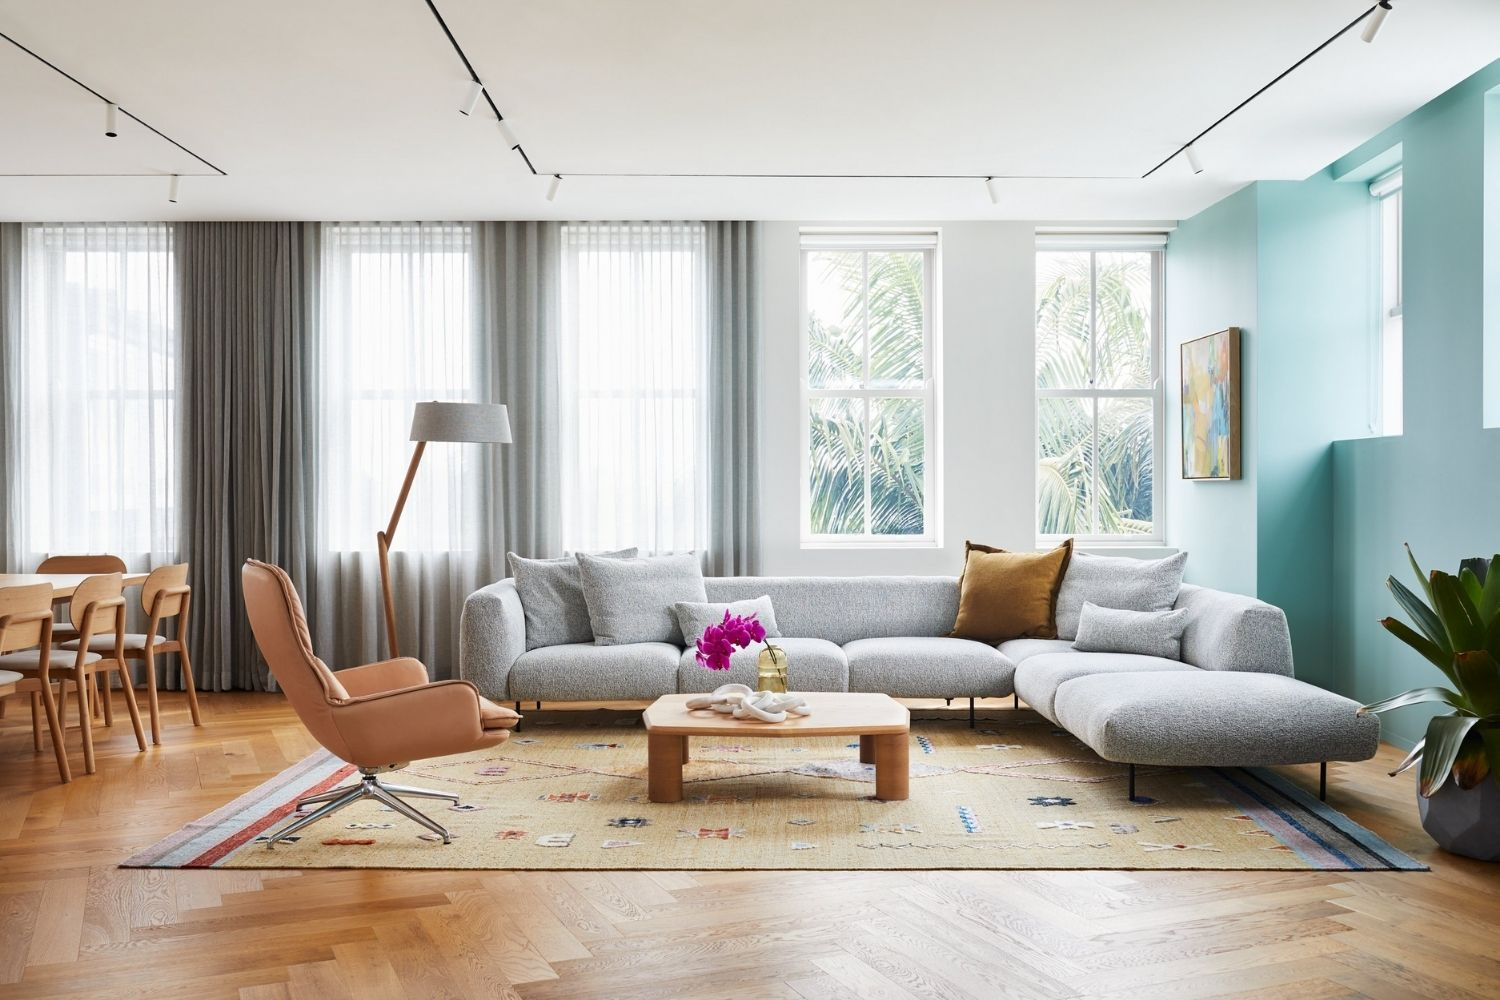 4 Major Tips To Find The Top-Rated Furniture Outlet In Sydney